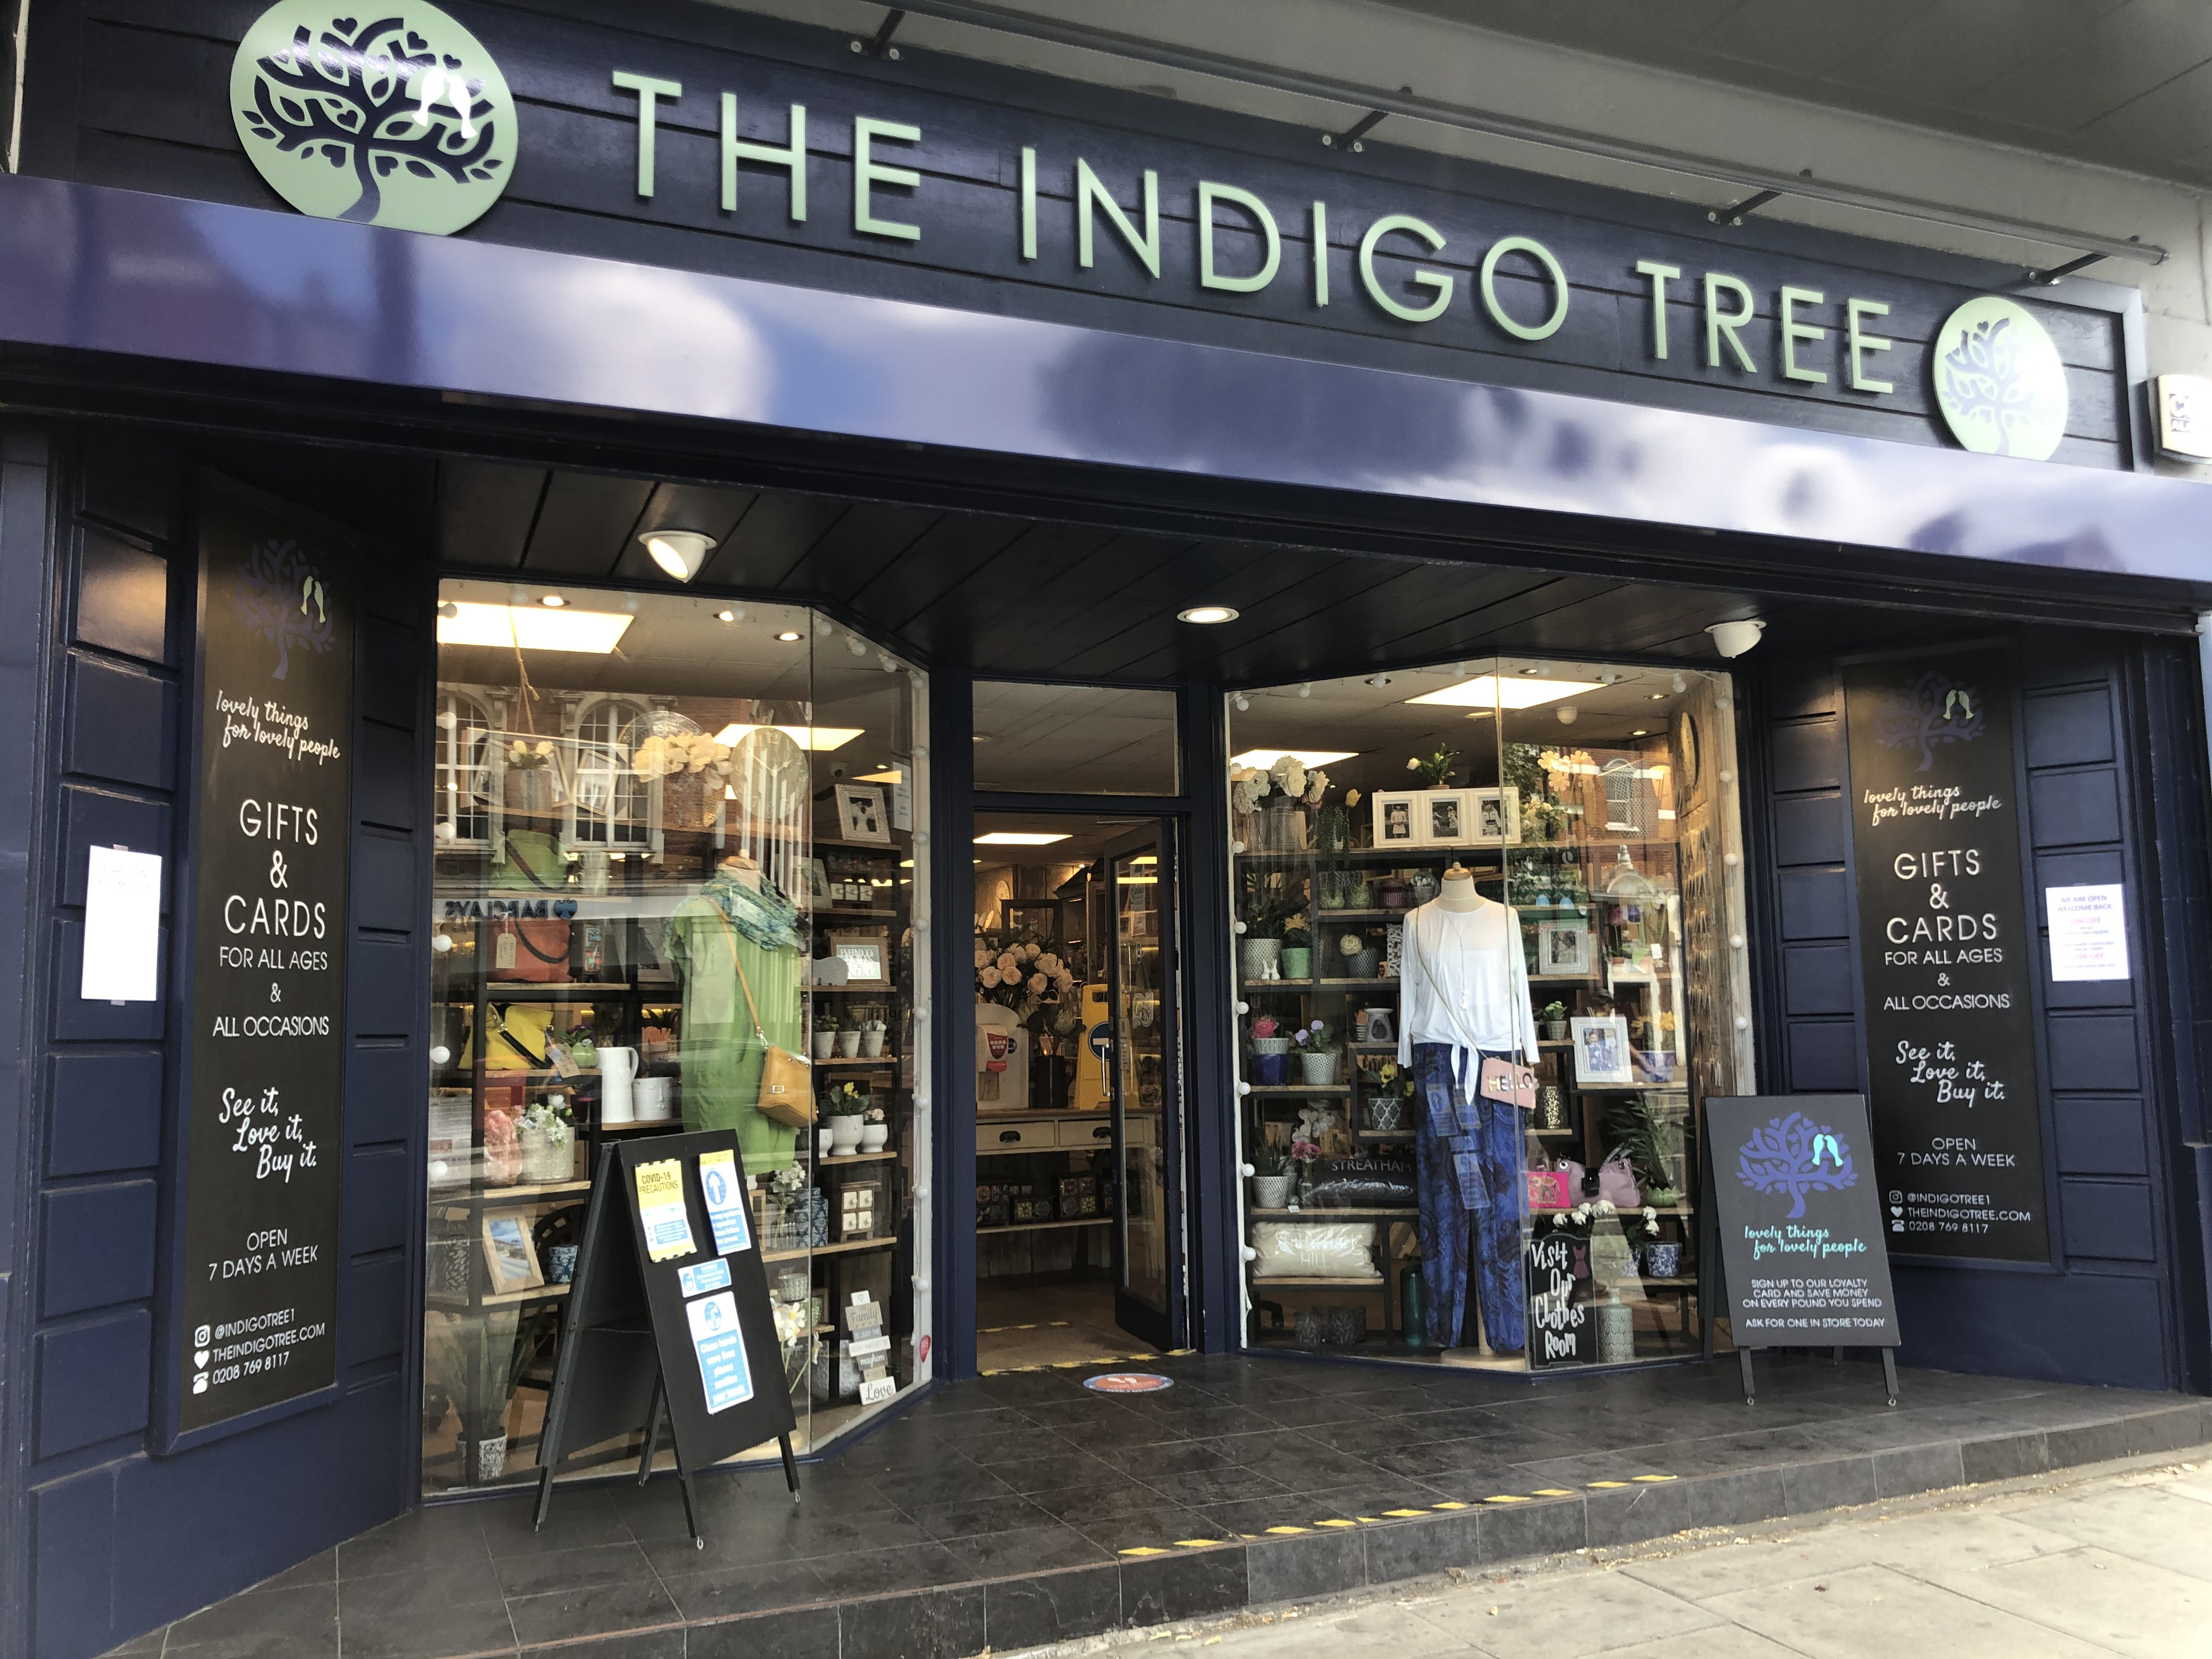 Above: The Indigo Tree, Streatham has adopted a one way system in the store.